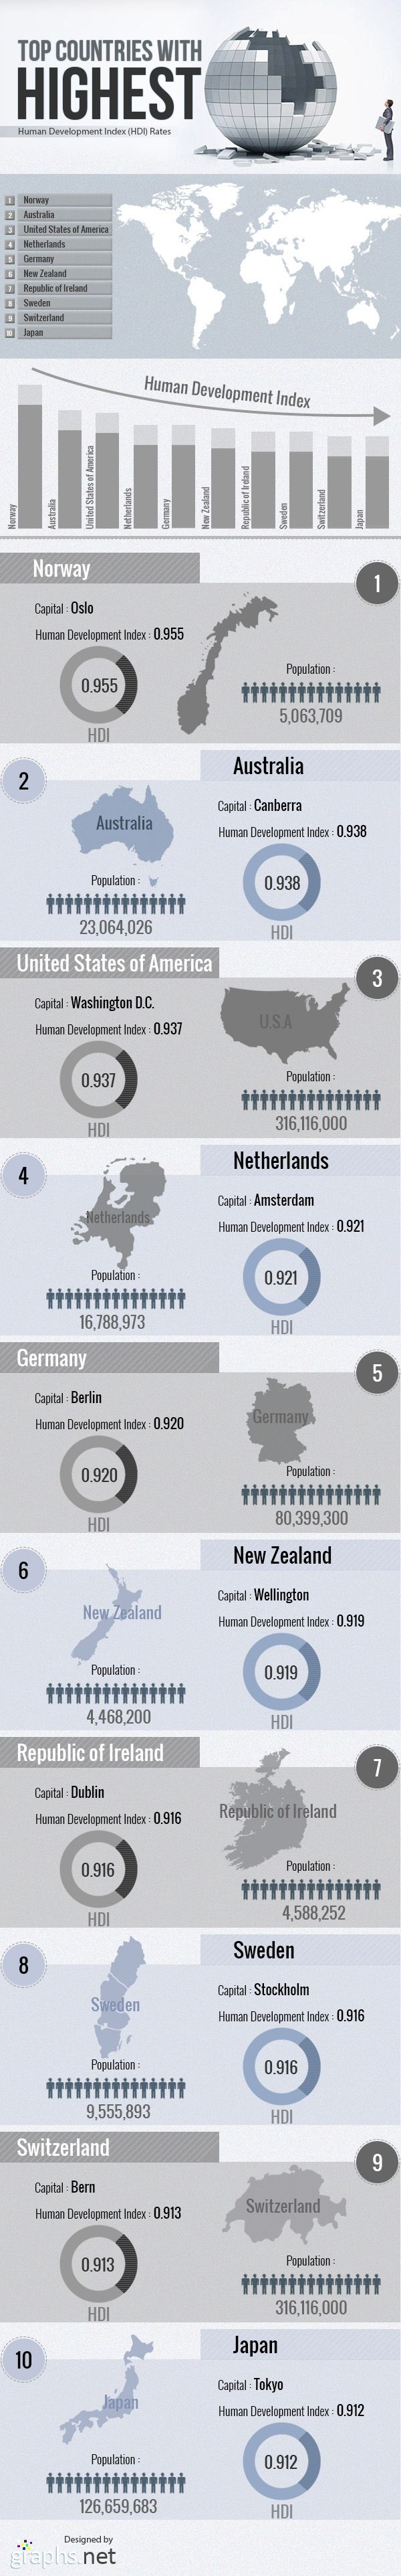 Norway, Austria and United States Top Human Development Index